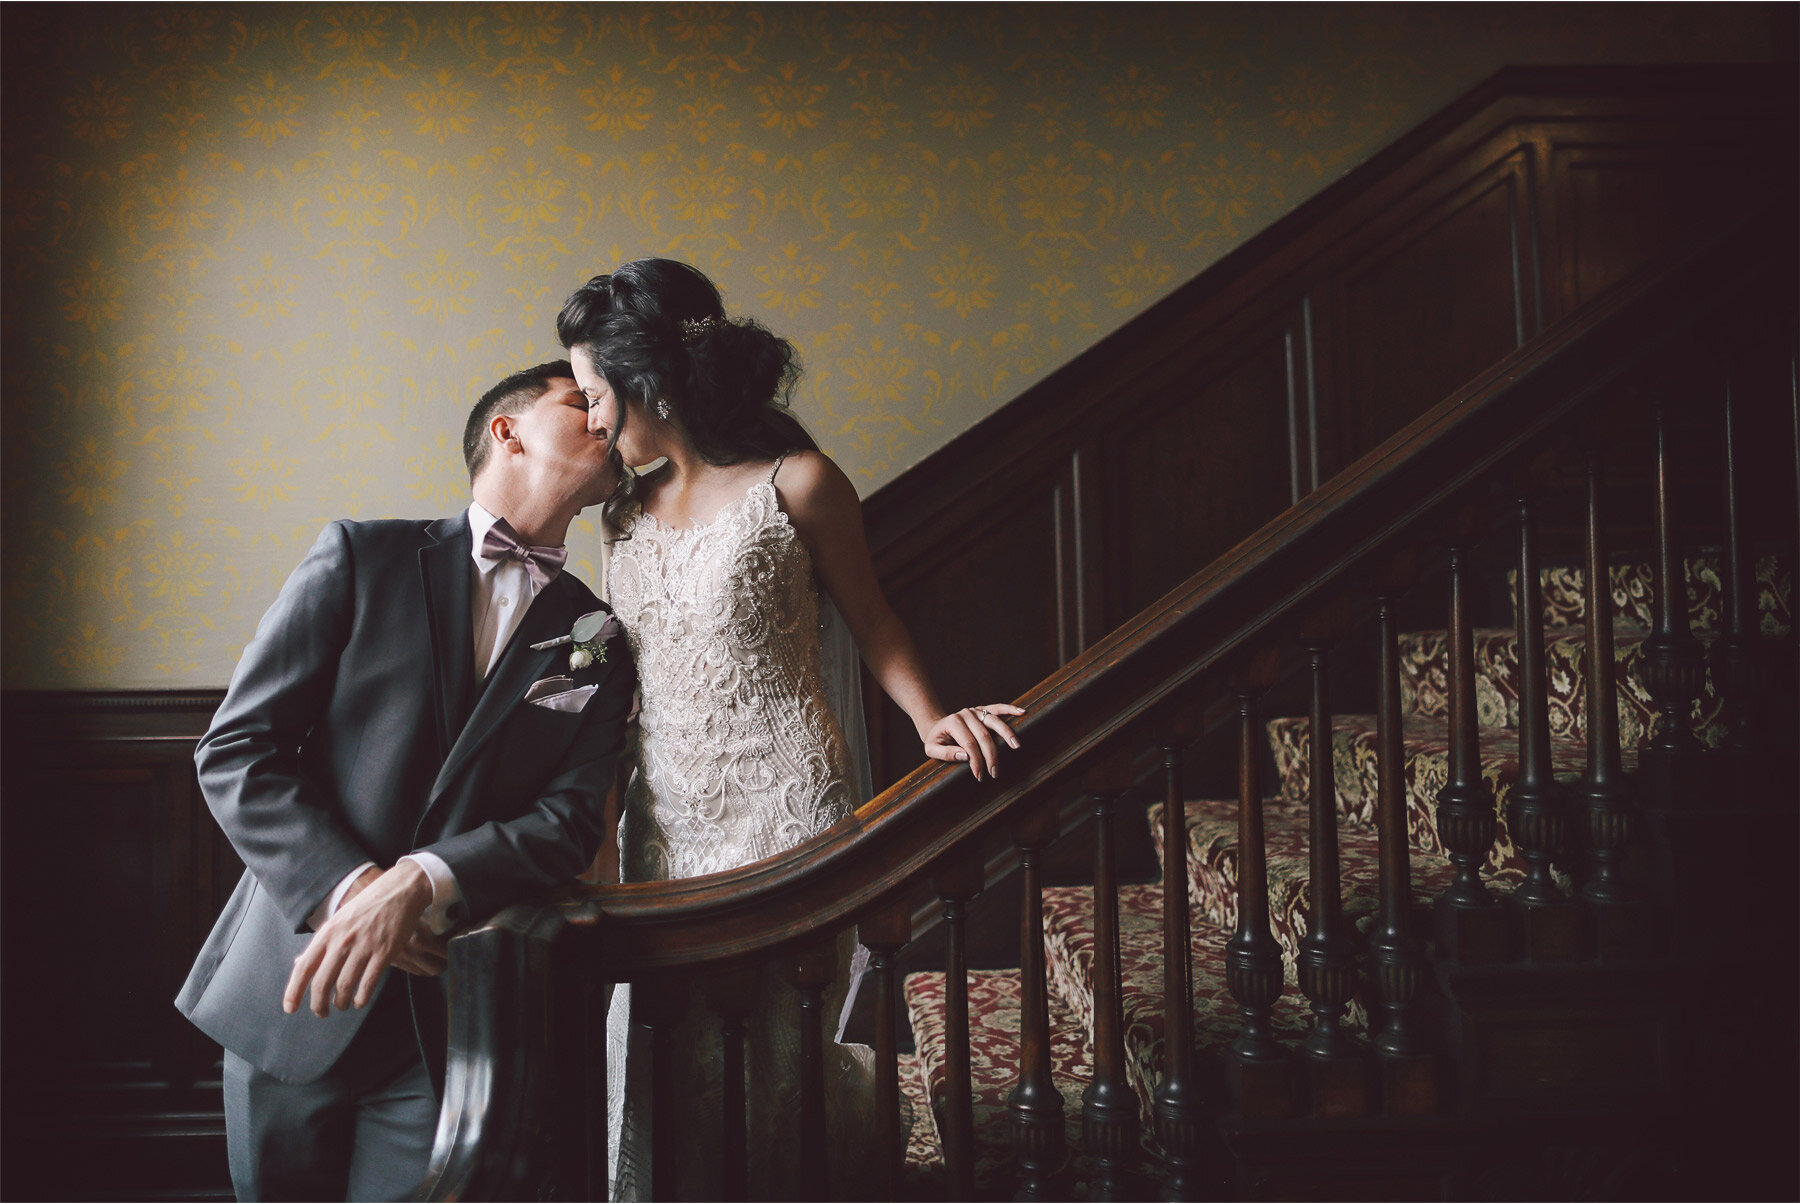 05-Wedding-by-Vick-Photography-Minneapolis-Minnesota-Semple-Mansion-Historic-Venue-Bride-Groom-First-Look-Staircase-Kiss-Kaitlyn-and-Nate.jpg